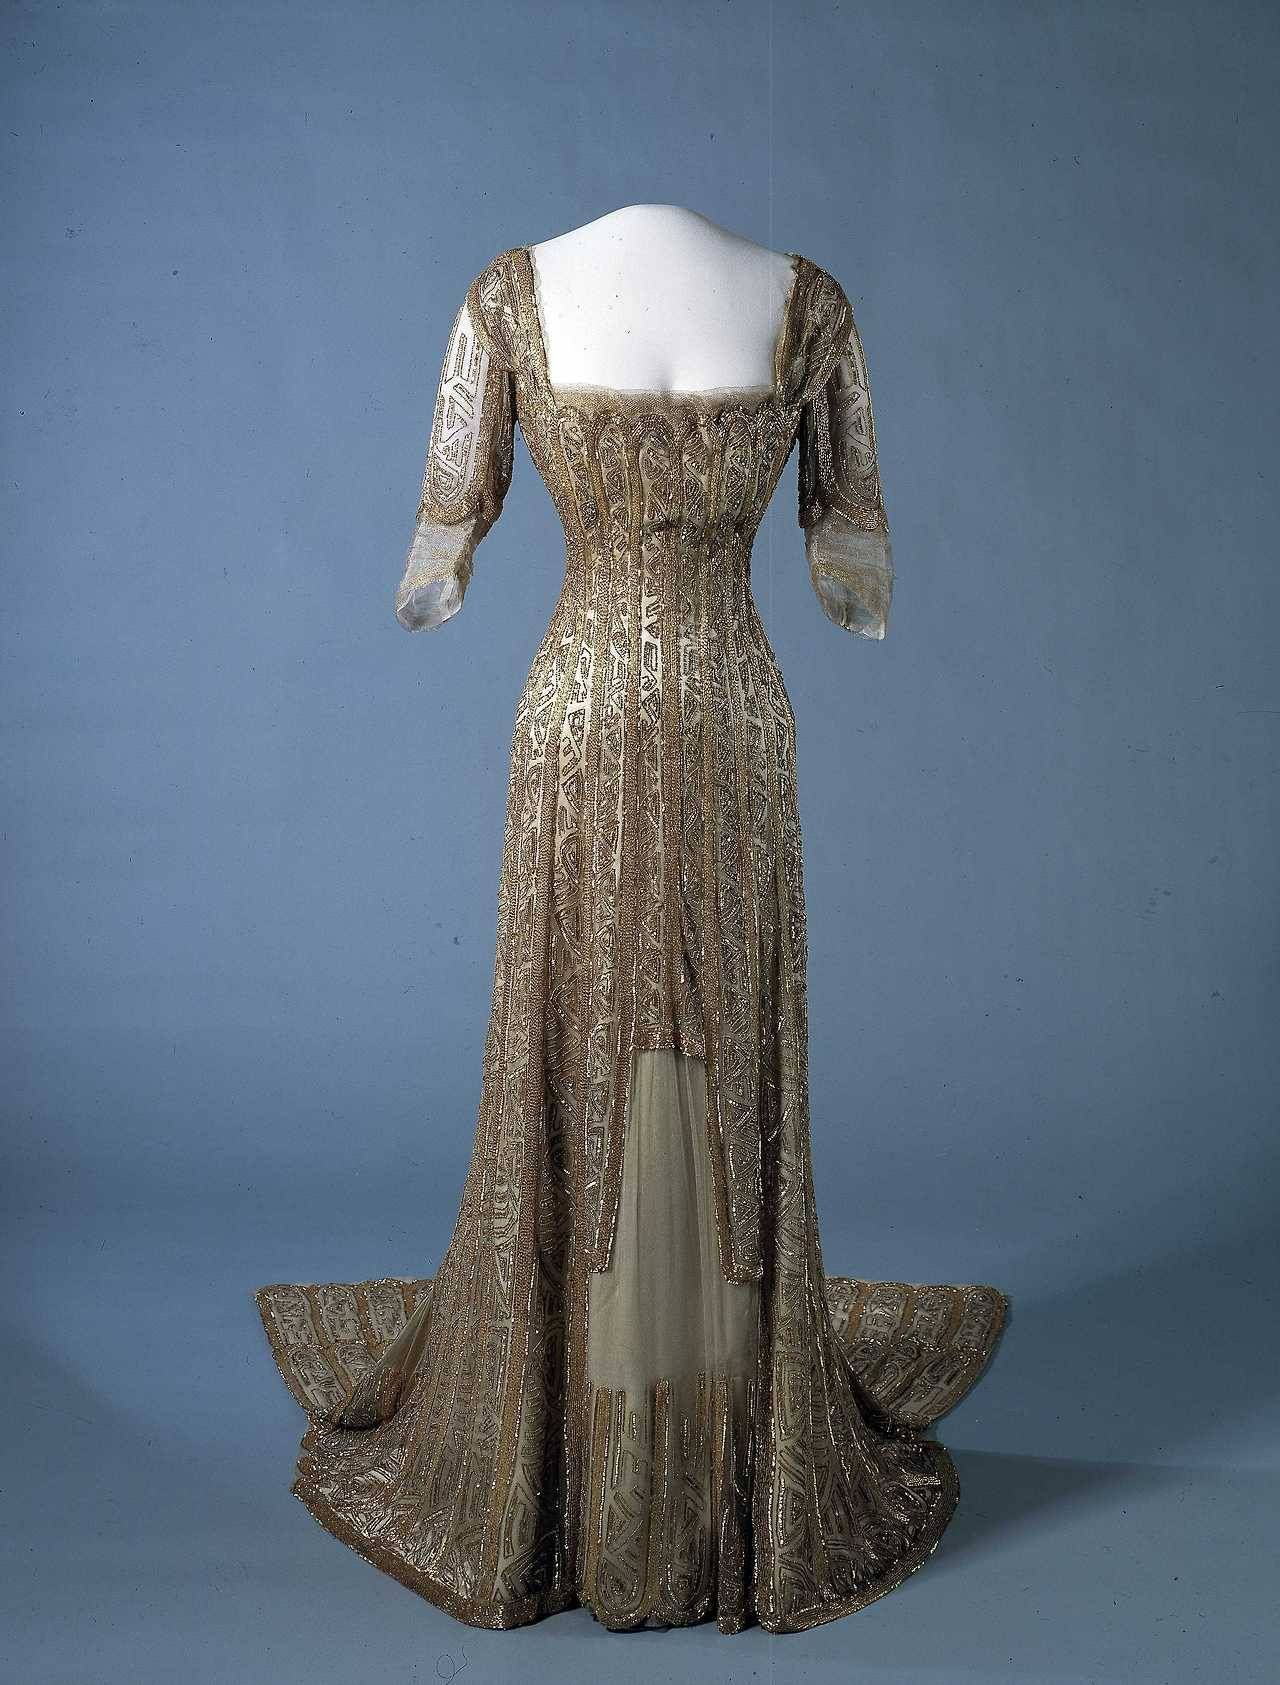 1907-09   Vintage Fashions   Pinterest   Costumes, Vintage and ...